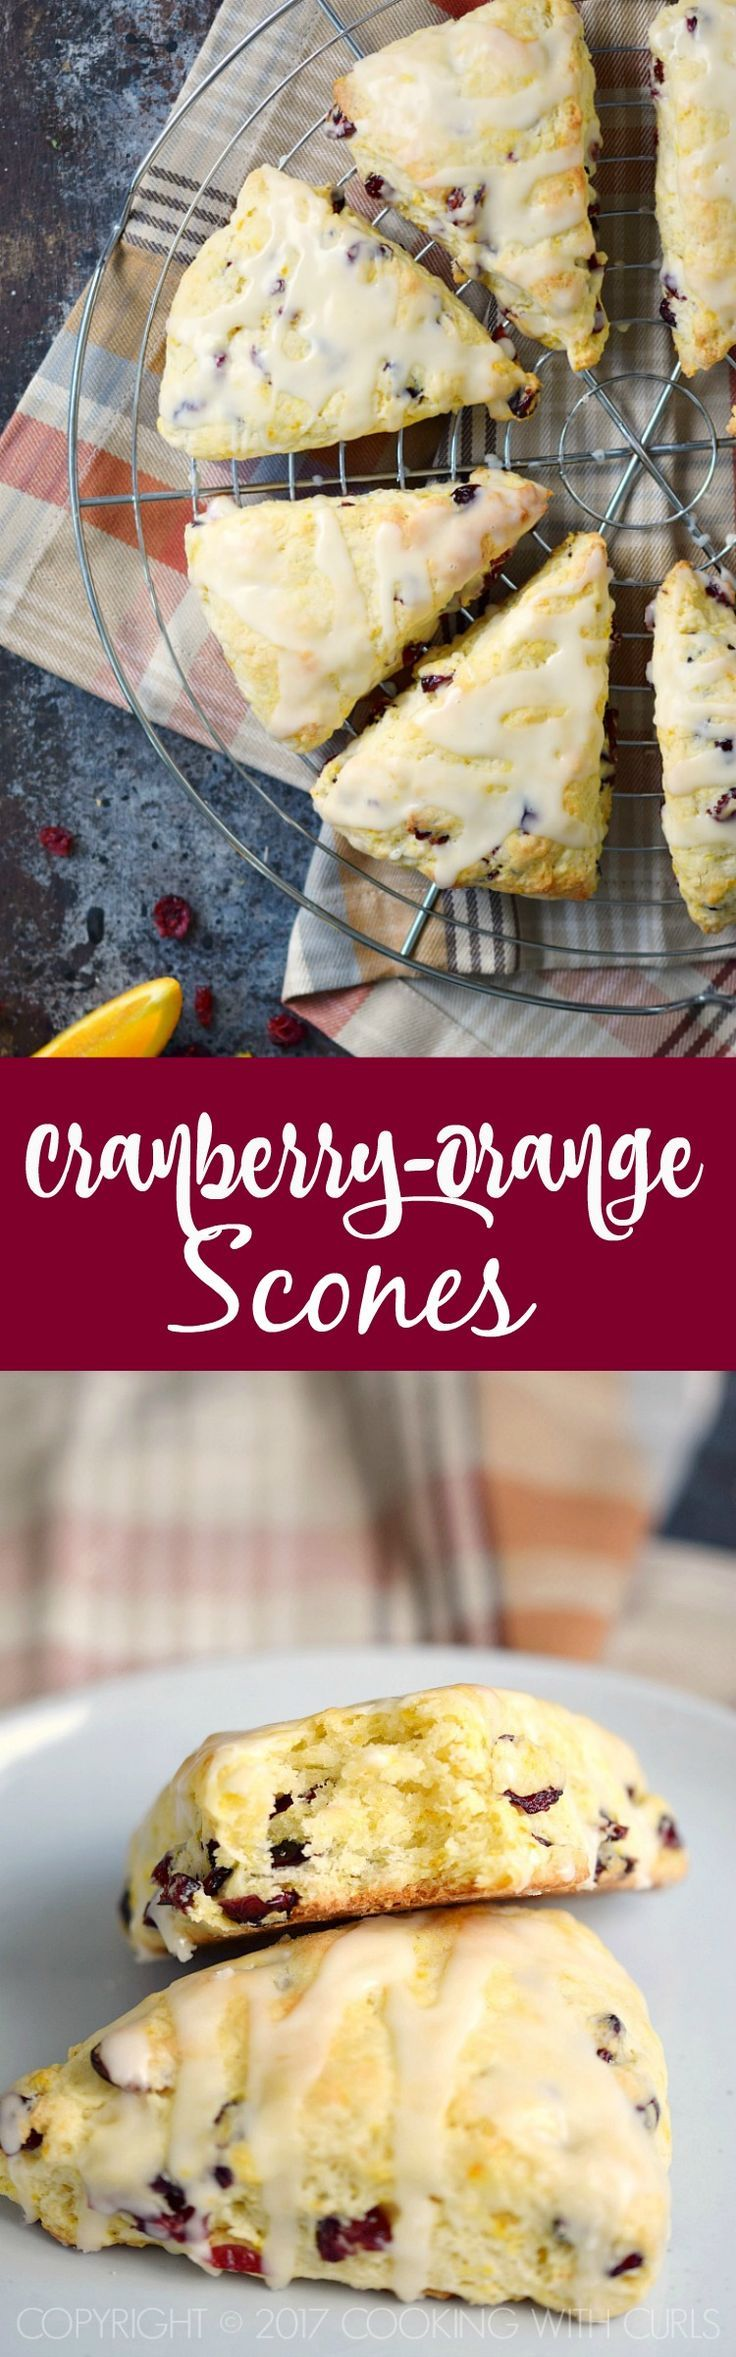 These light and flaky Cranberry-Orange Scones are bursting with orange flavor and studded with dried cranberries and make a delicious breakfast treat! COPYRIGHT ©️️ 2017 COOKING WITH CURLS #feastndevour #breakfast